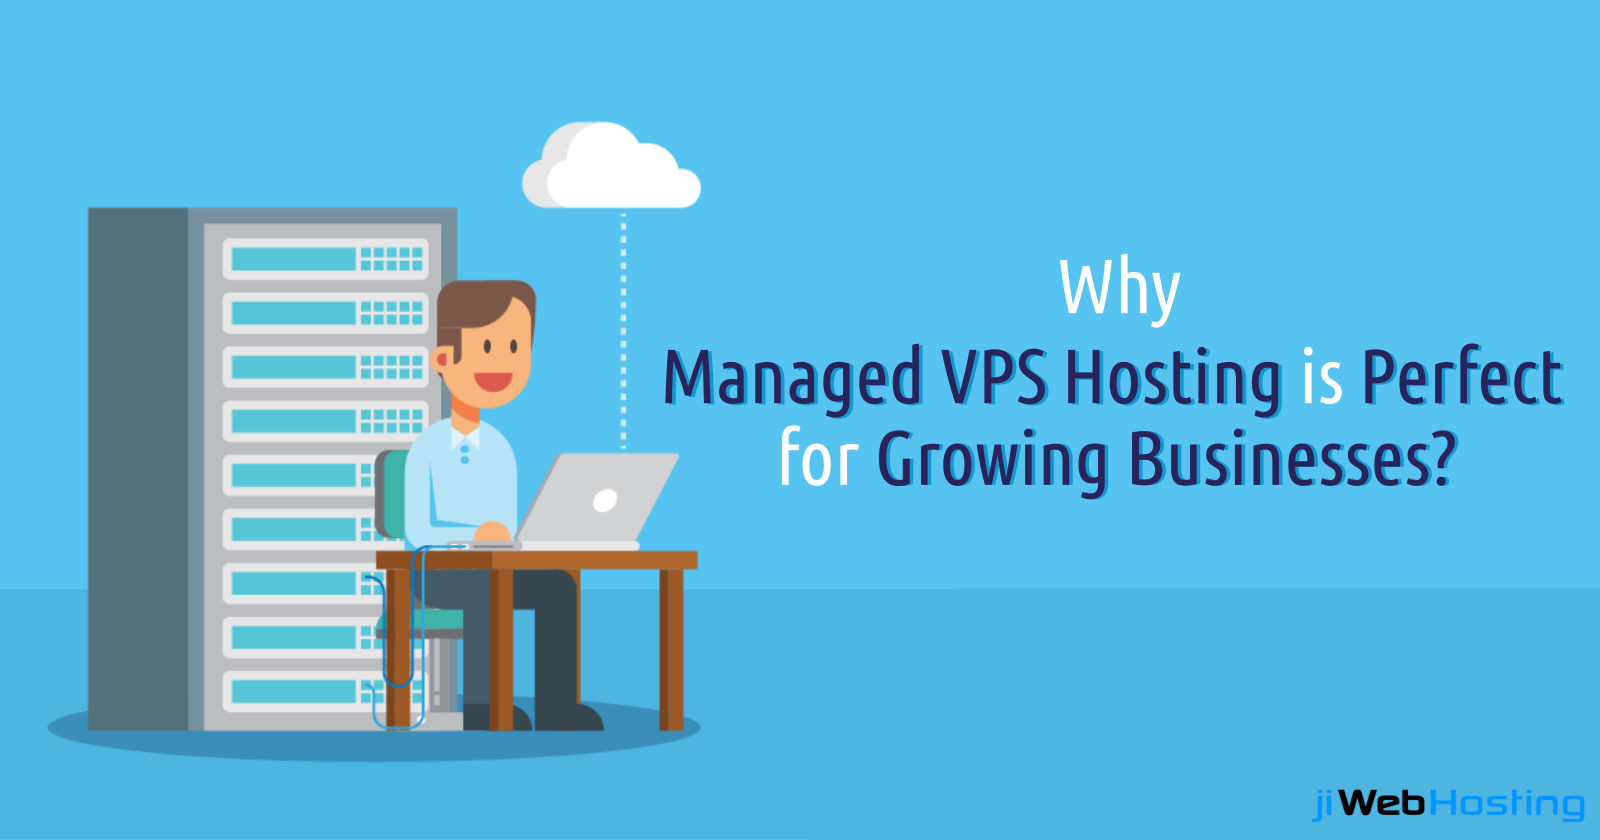 Why Managed VPS Hosting is Perfect for Growing Businesses?